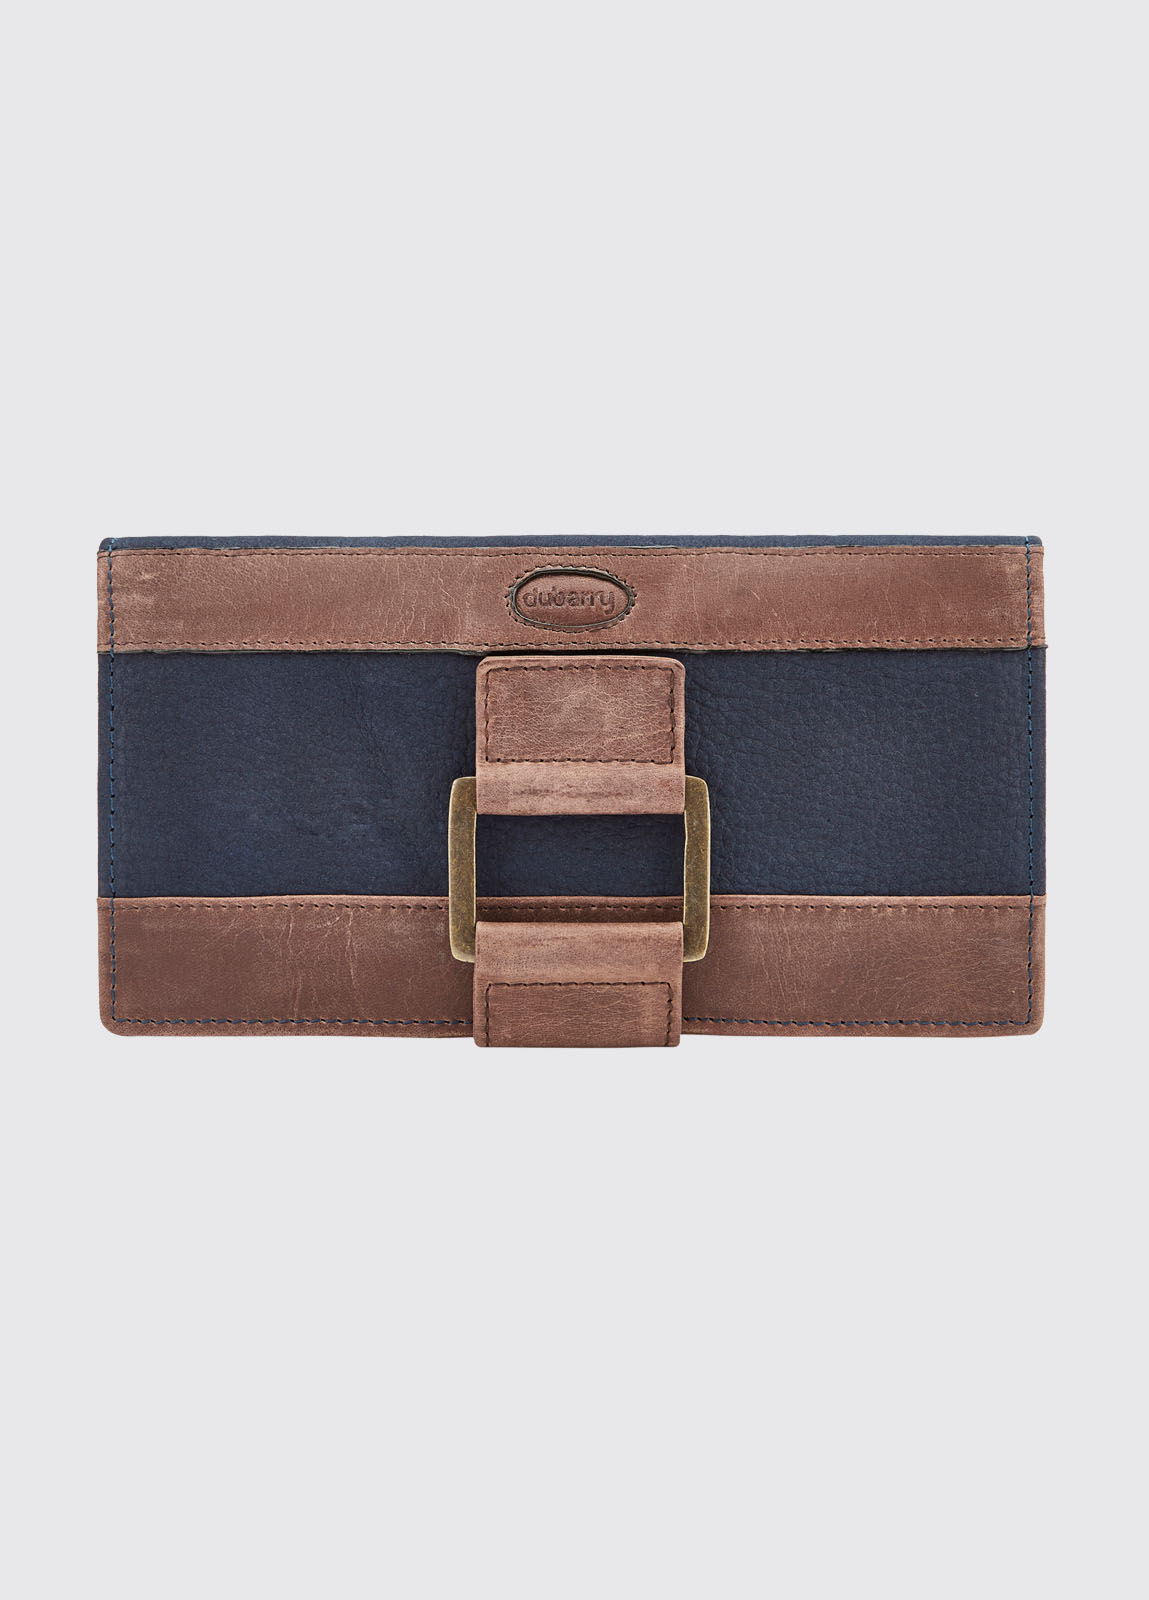 Dunbrody Leather Purse - Navy/Brown